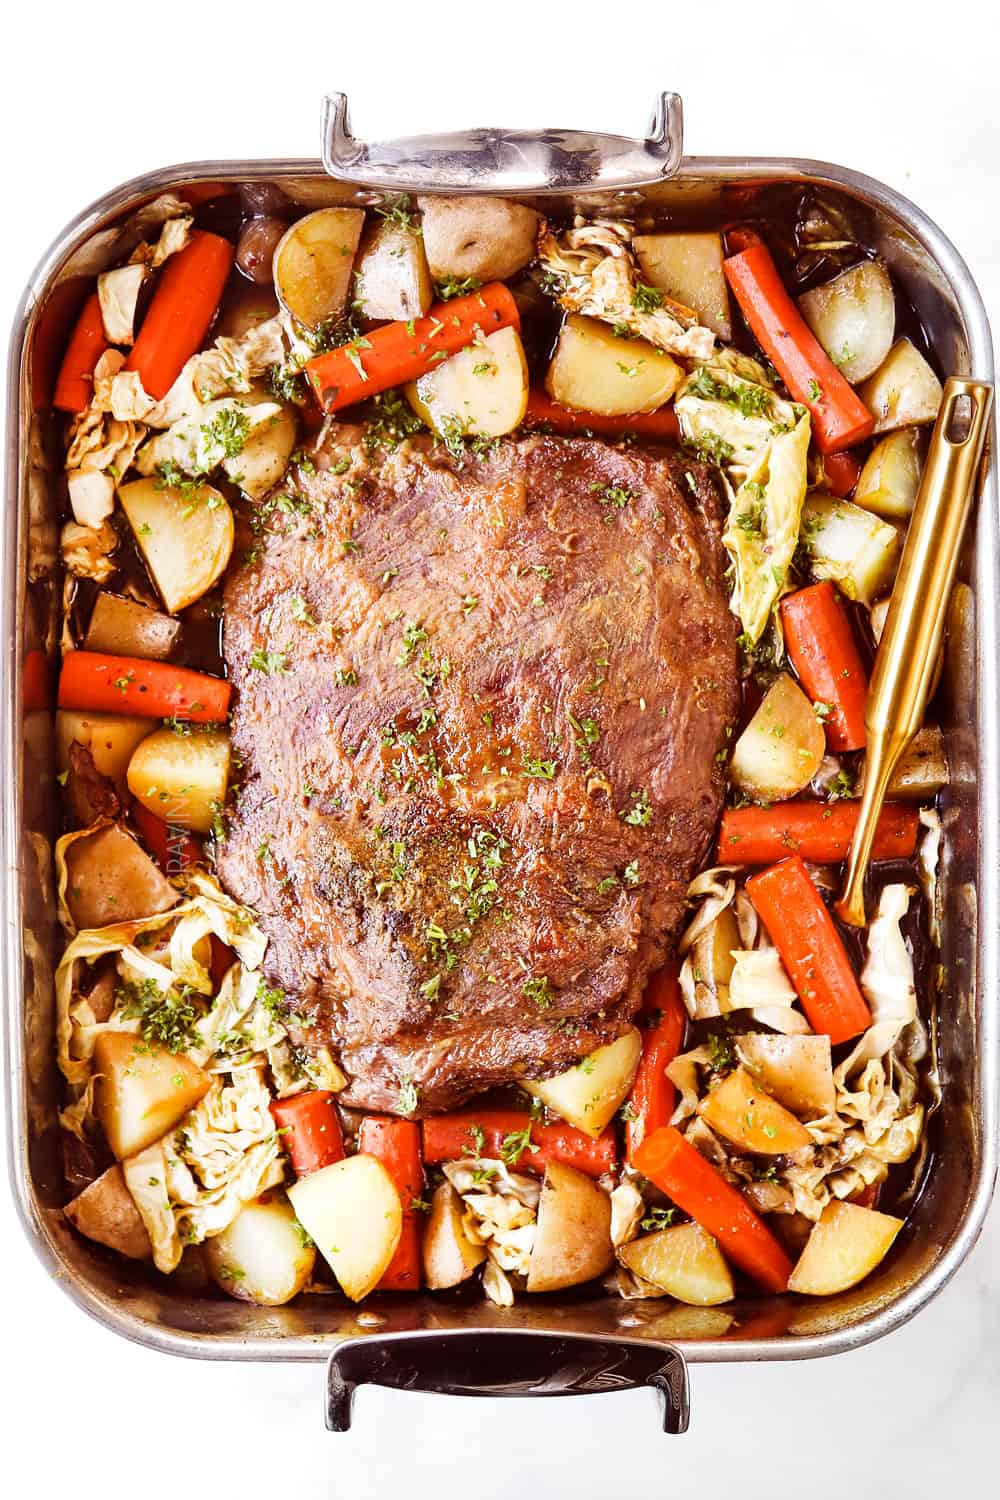 showing how to cook corned beef by roasting in a pan in the oven with cabbage, carrots and onions